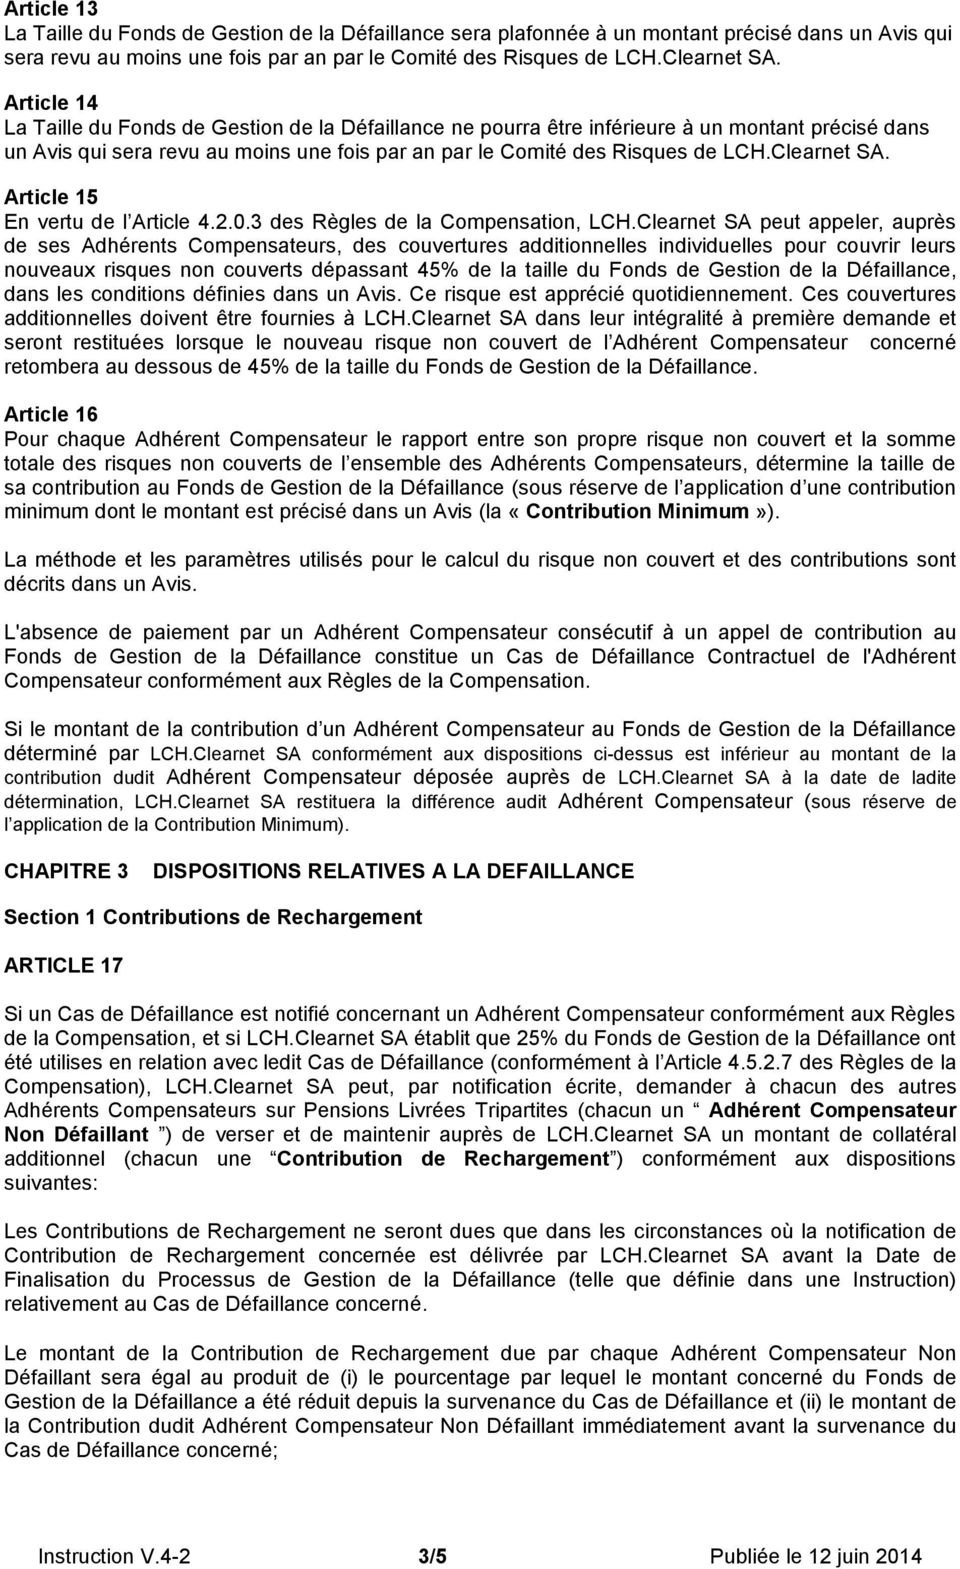 Clearnet SA. Article 15 En vertu de l Article 4.2.0.3 des Règles de la Compensation, LCH.